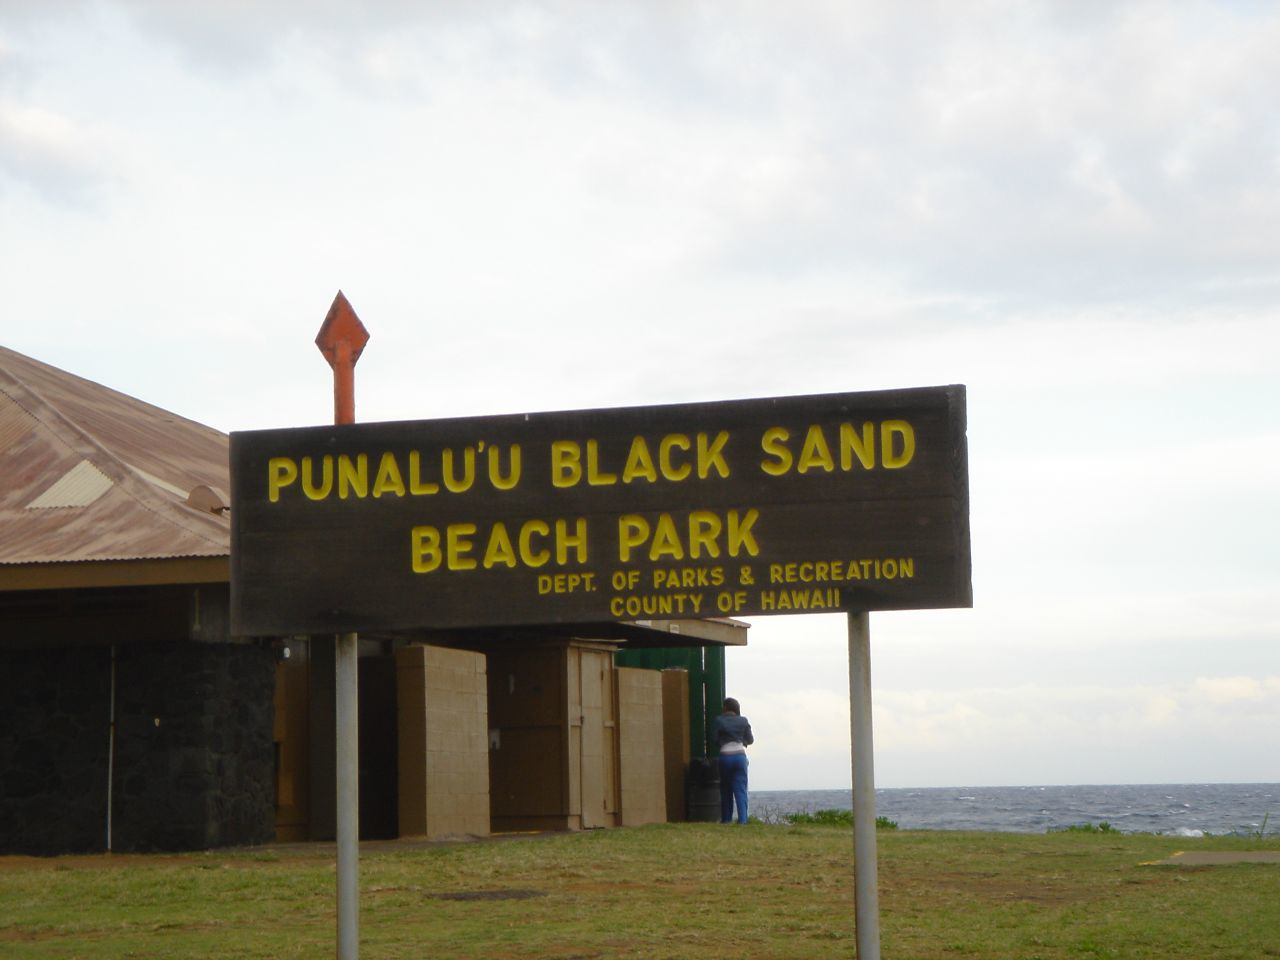 Sign at Punalu'u Black Sand Beach Park, Hawaii